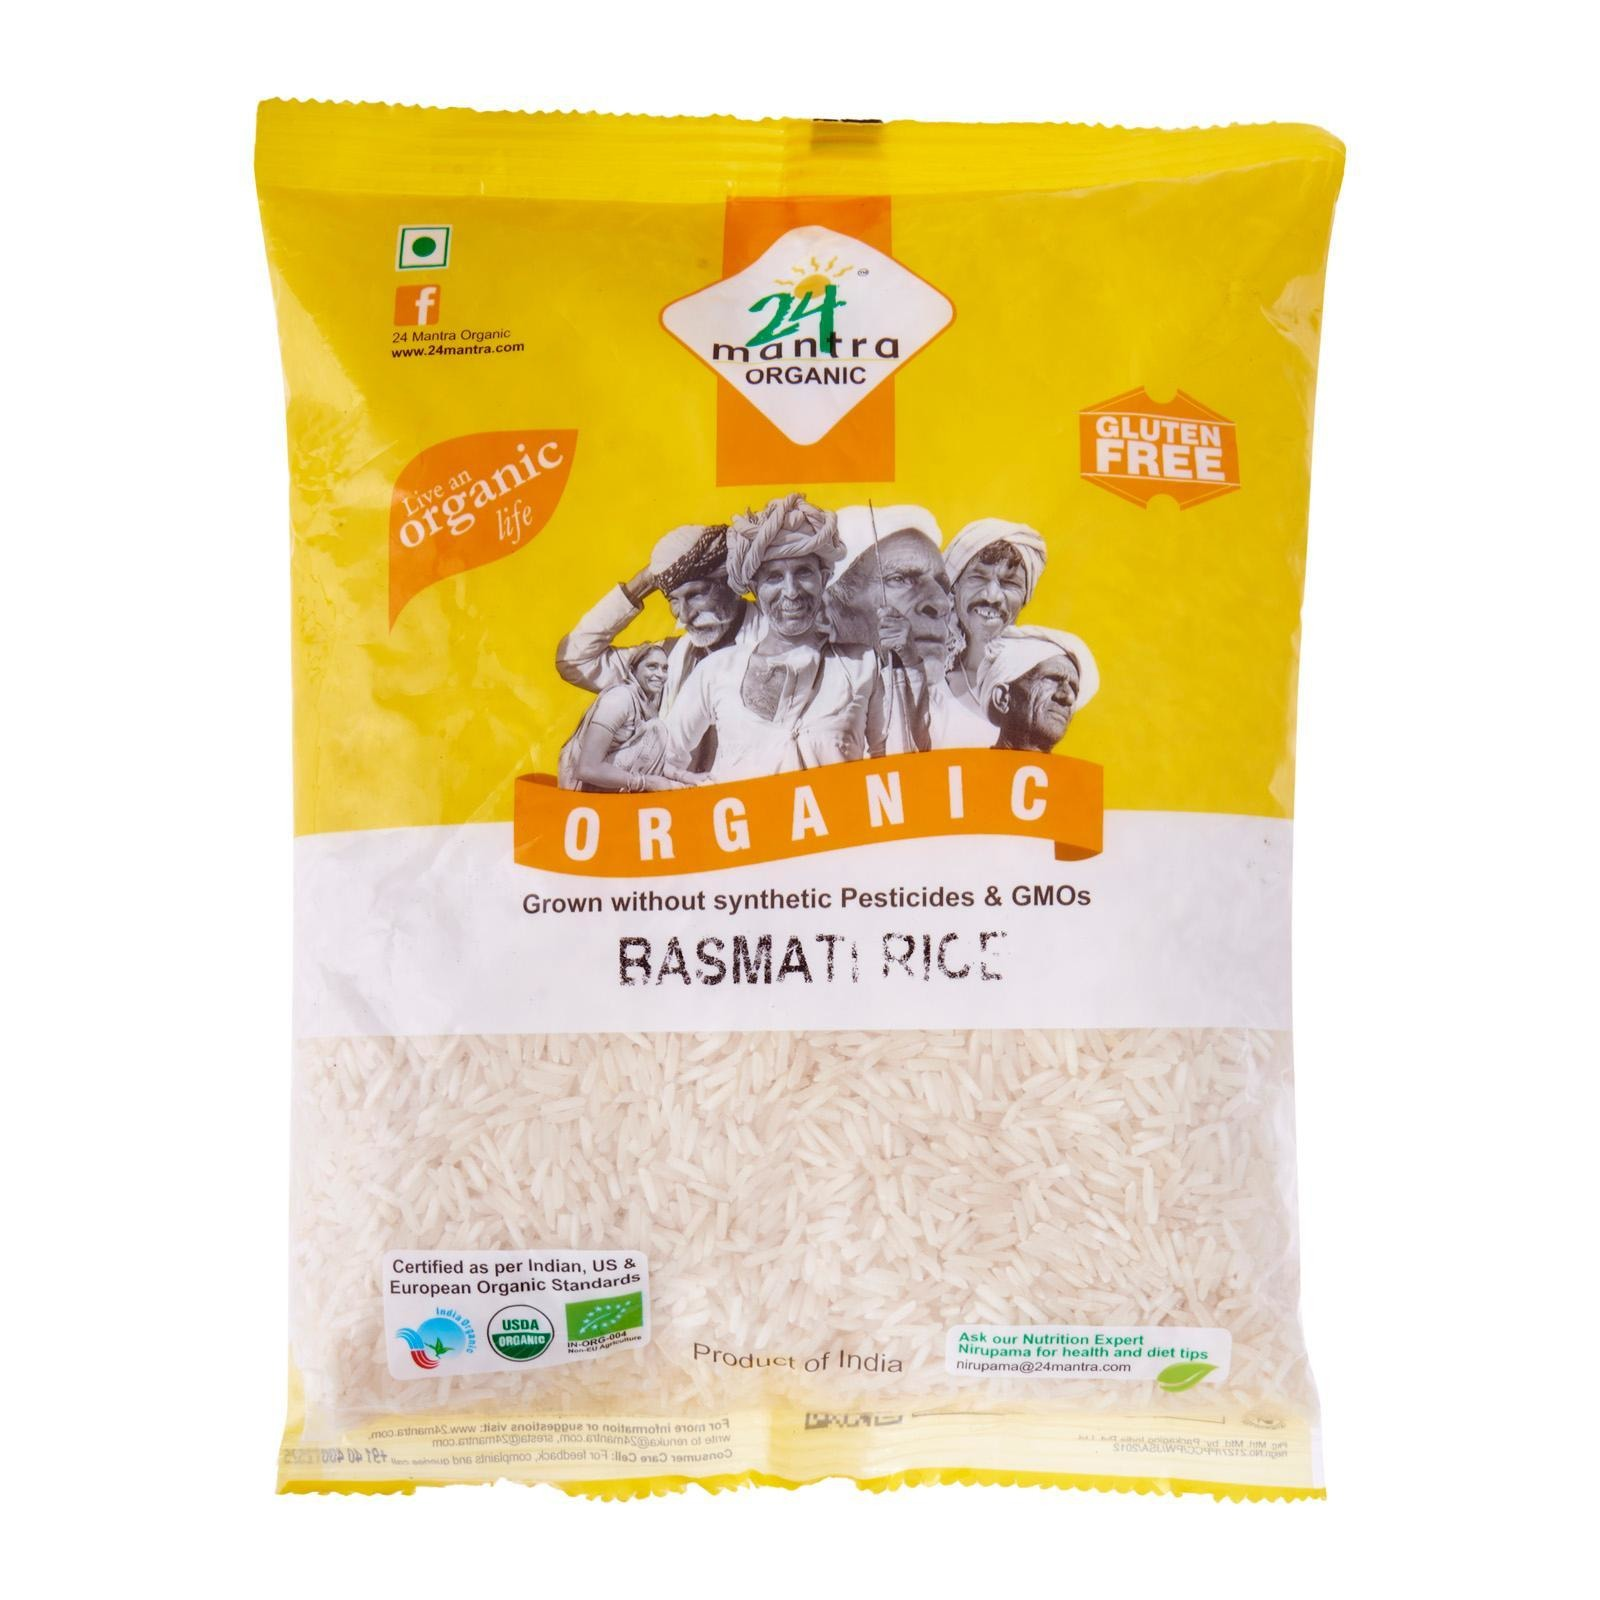 24 Mantra Organic - Basmati White Rice